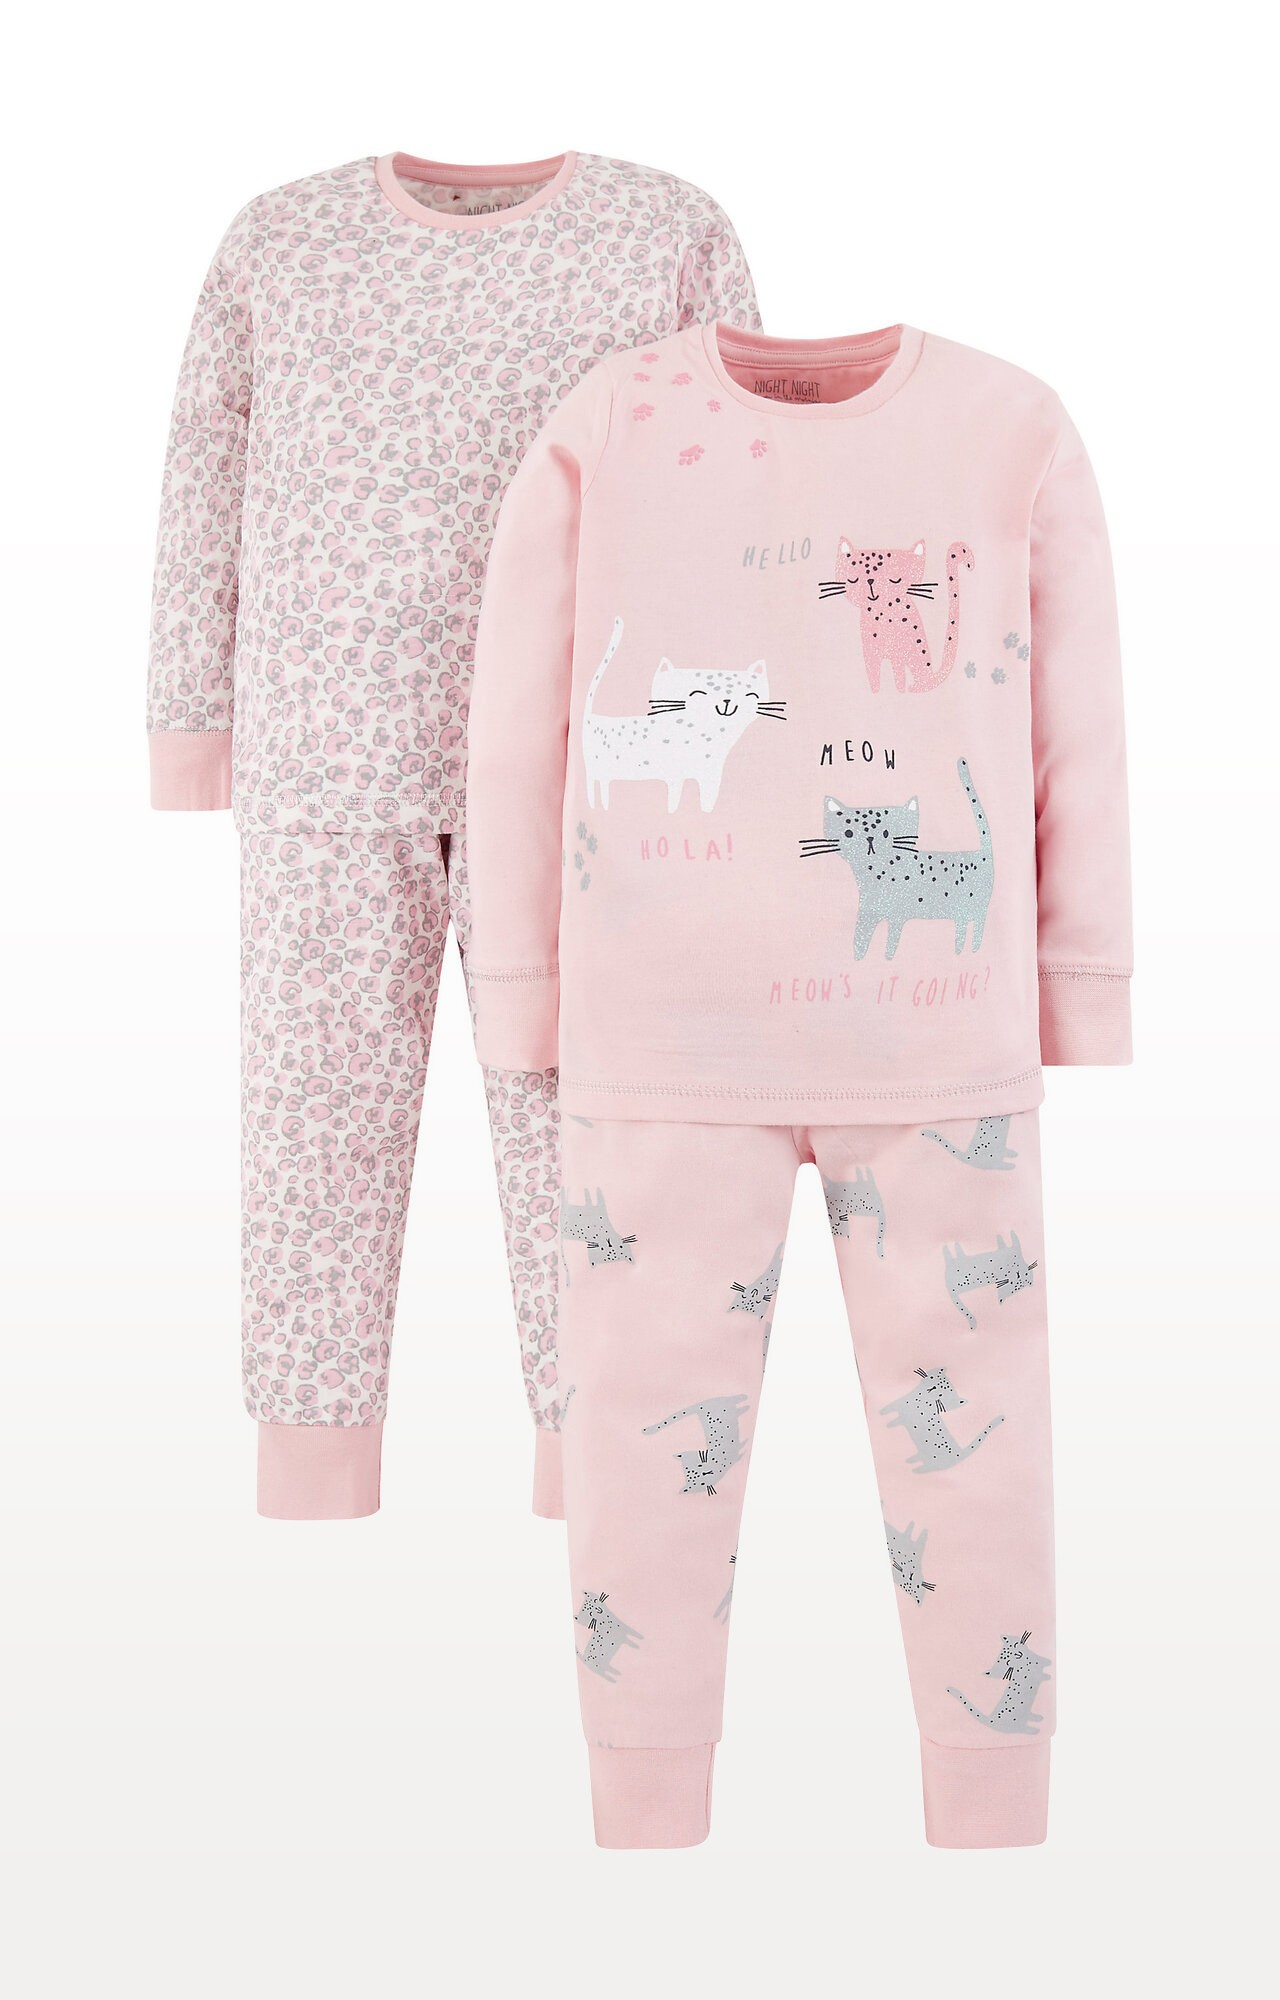 Mothercare   Pink Cat and Leopard Print Pyjamas - Pack of 2